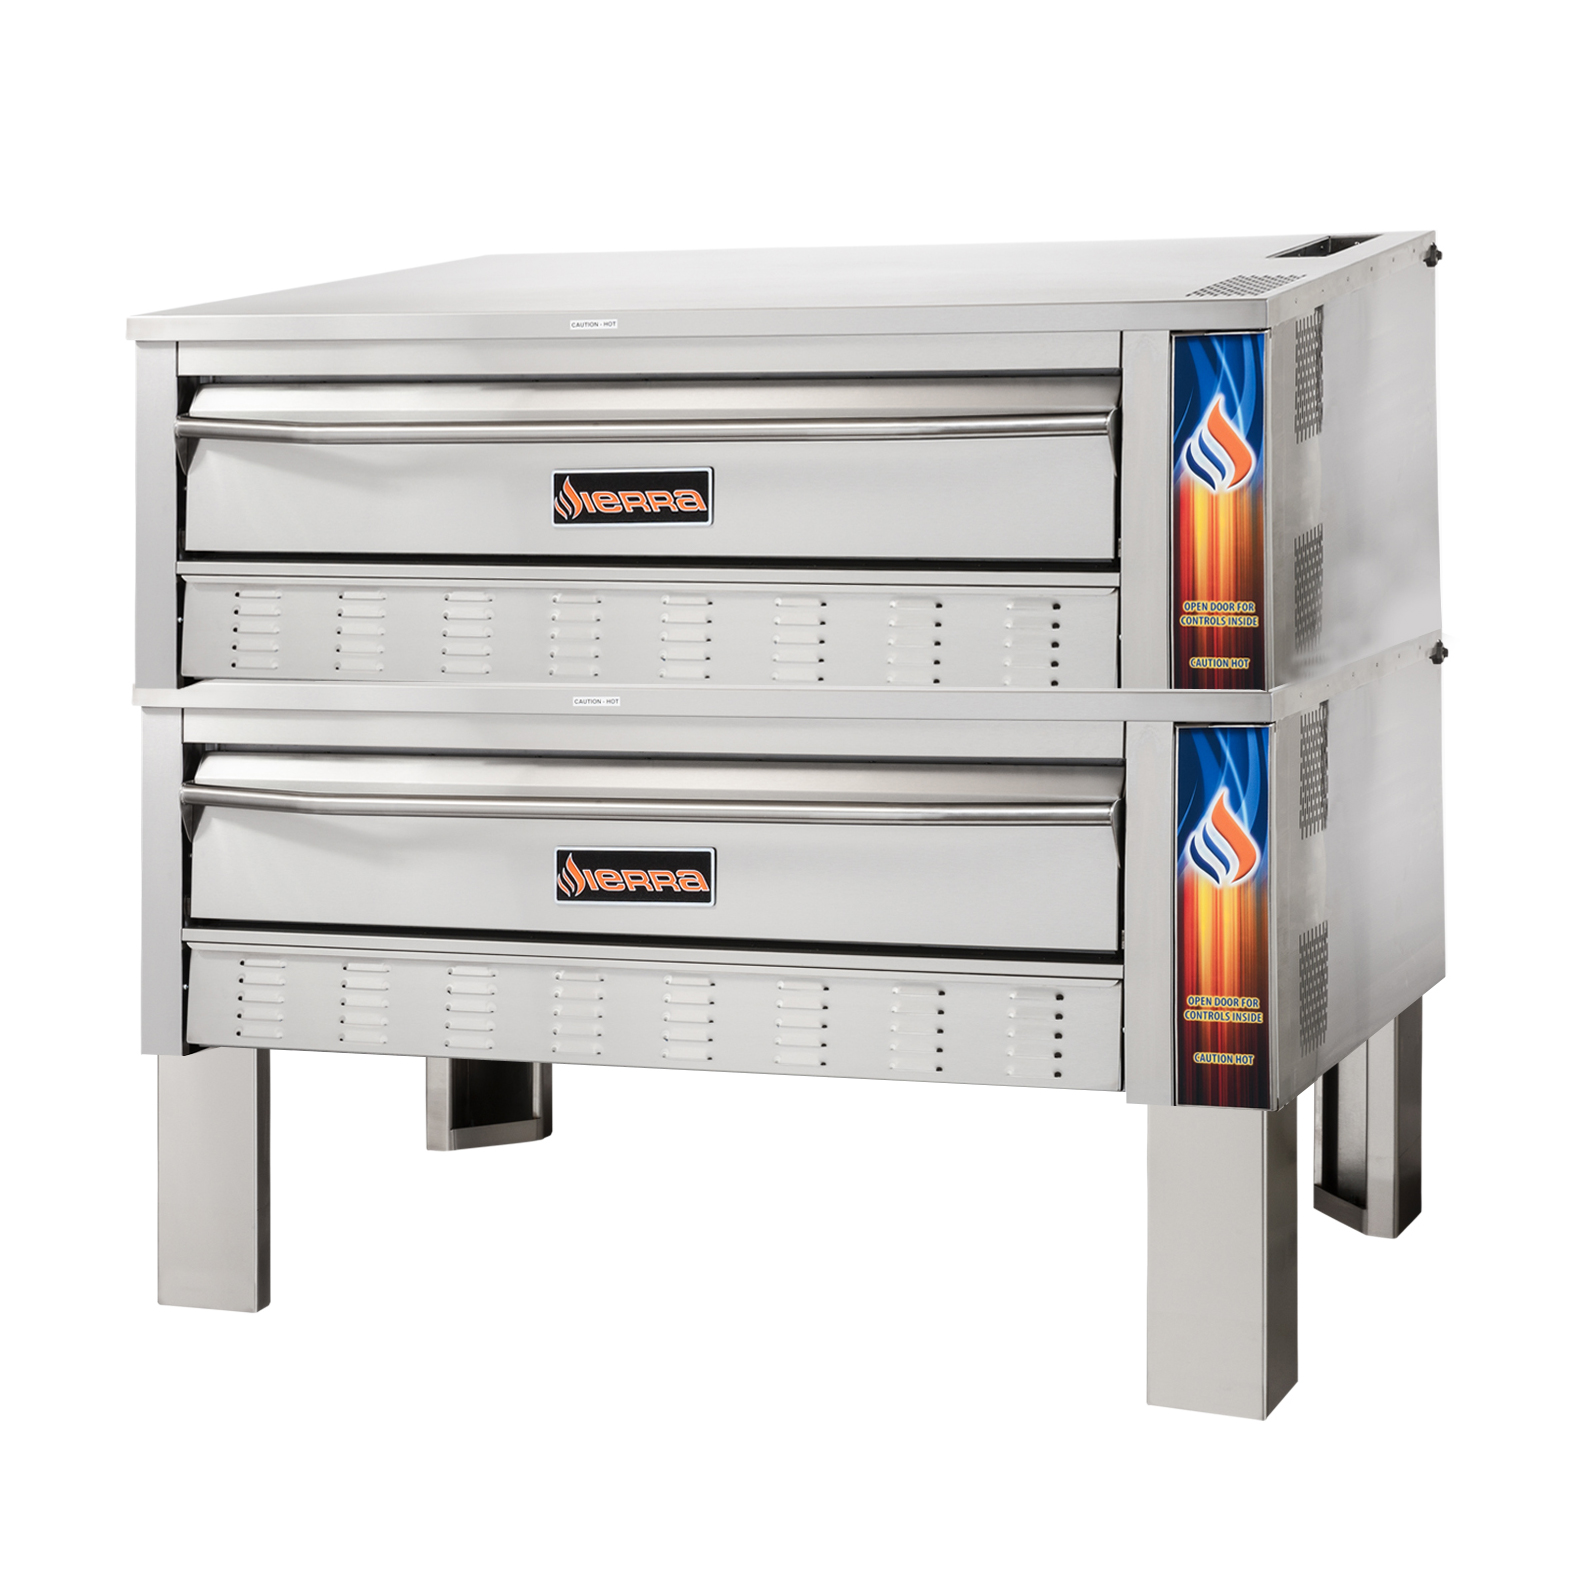 MVP SRPO-60G-2 pizza bake oven, deck-type, gas